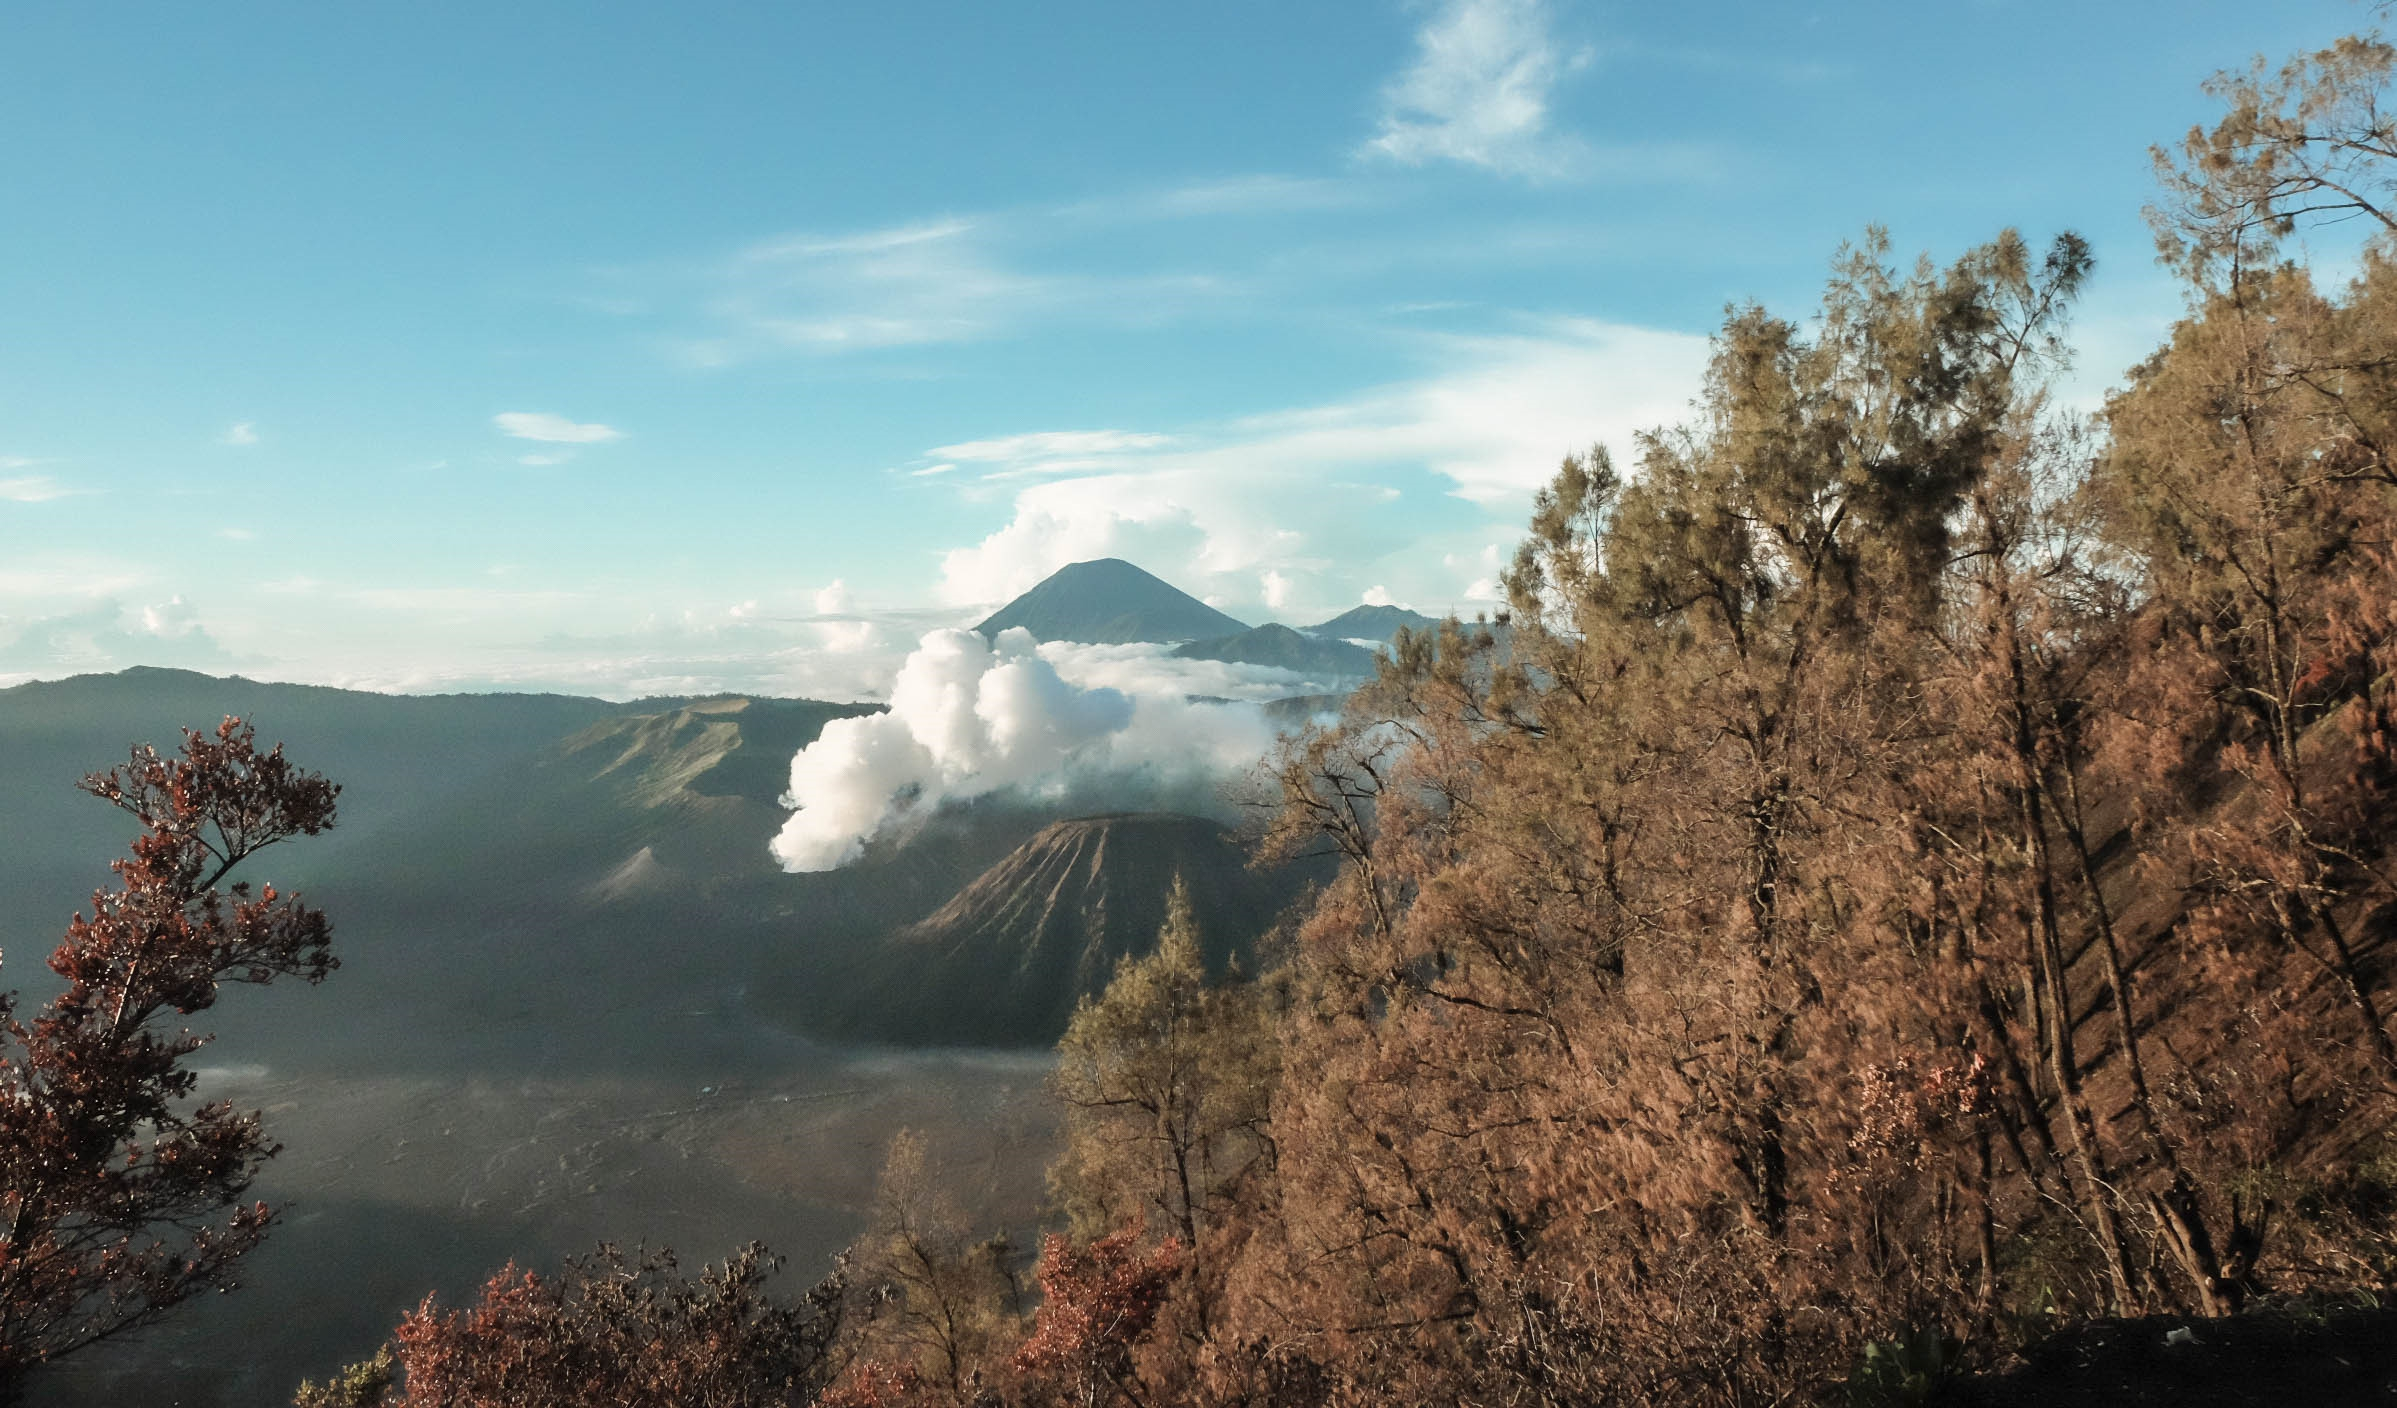 Den Indonesia, cham chan toi mieng nui lua Bromo hinh anh 2